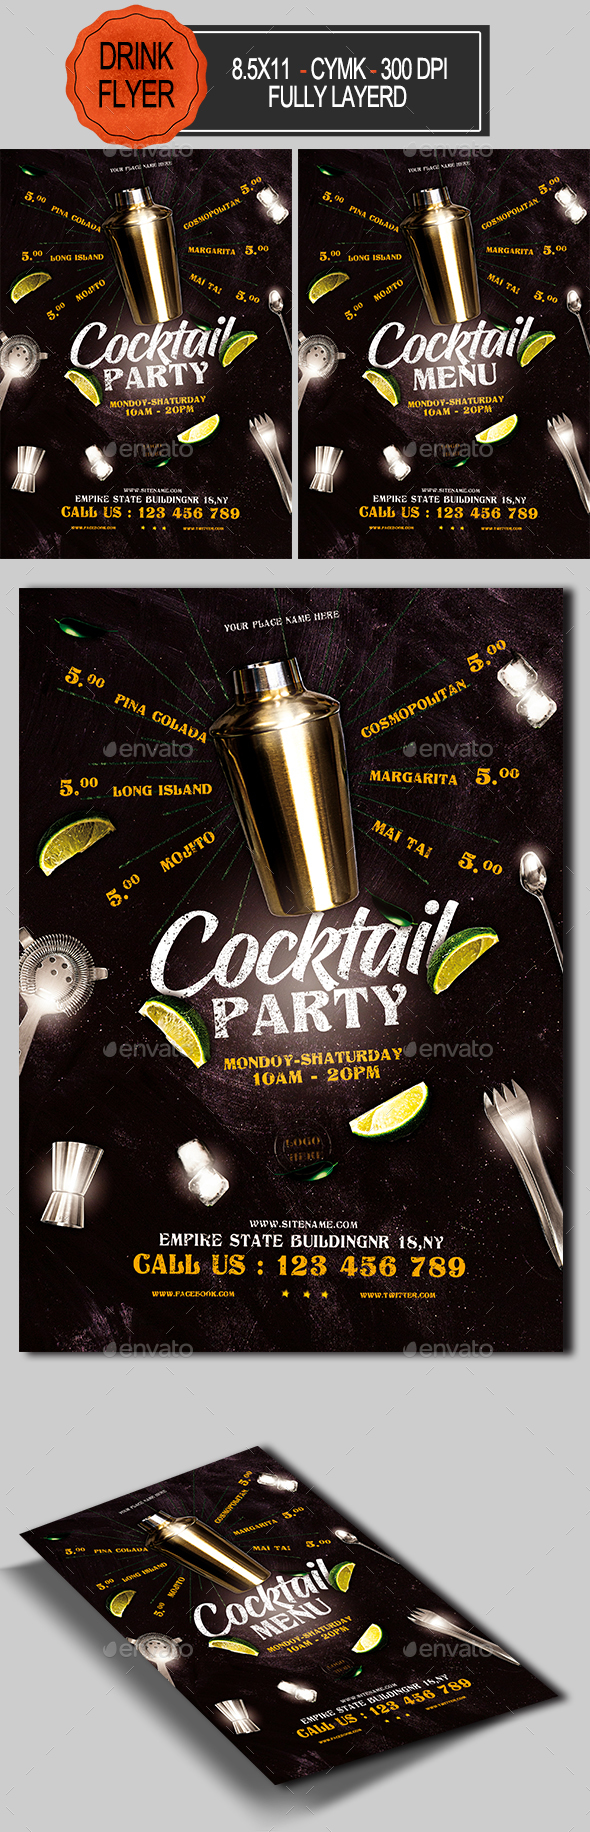 Cocktail Party Flyer - Restaurant Flyers